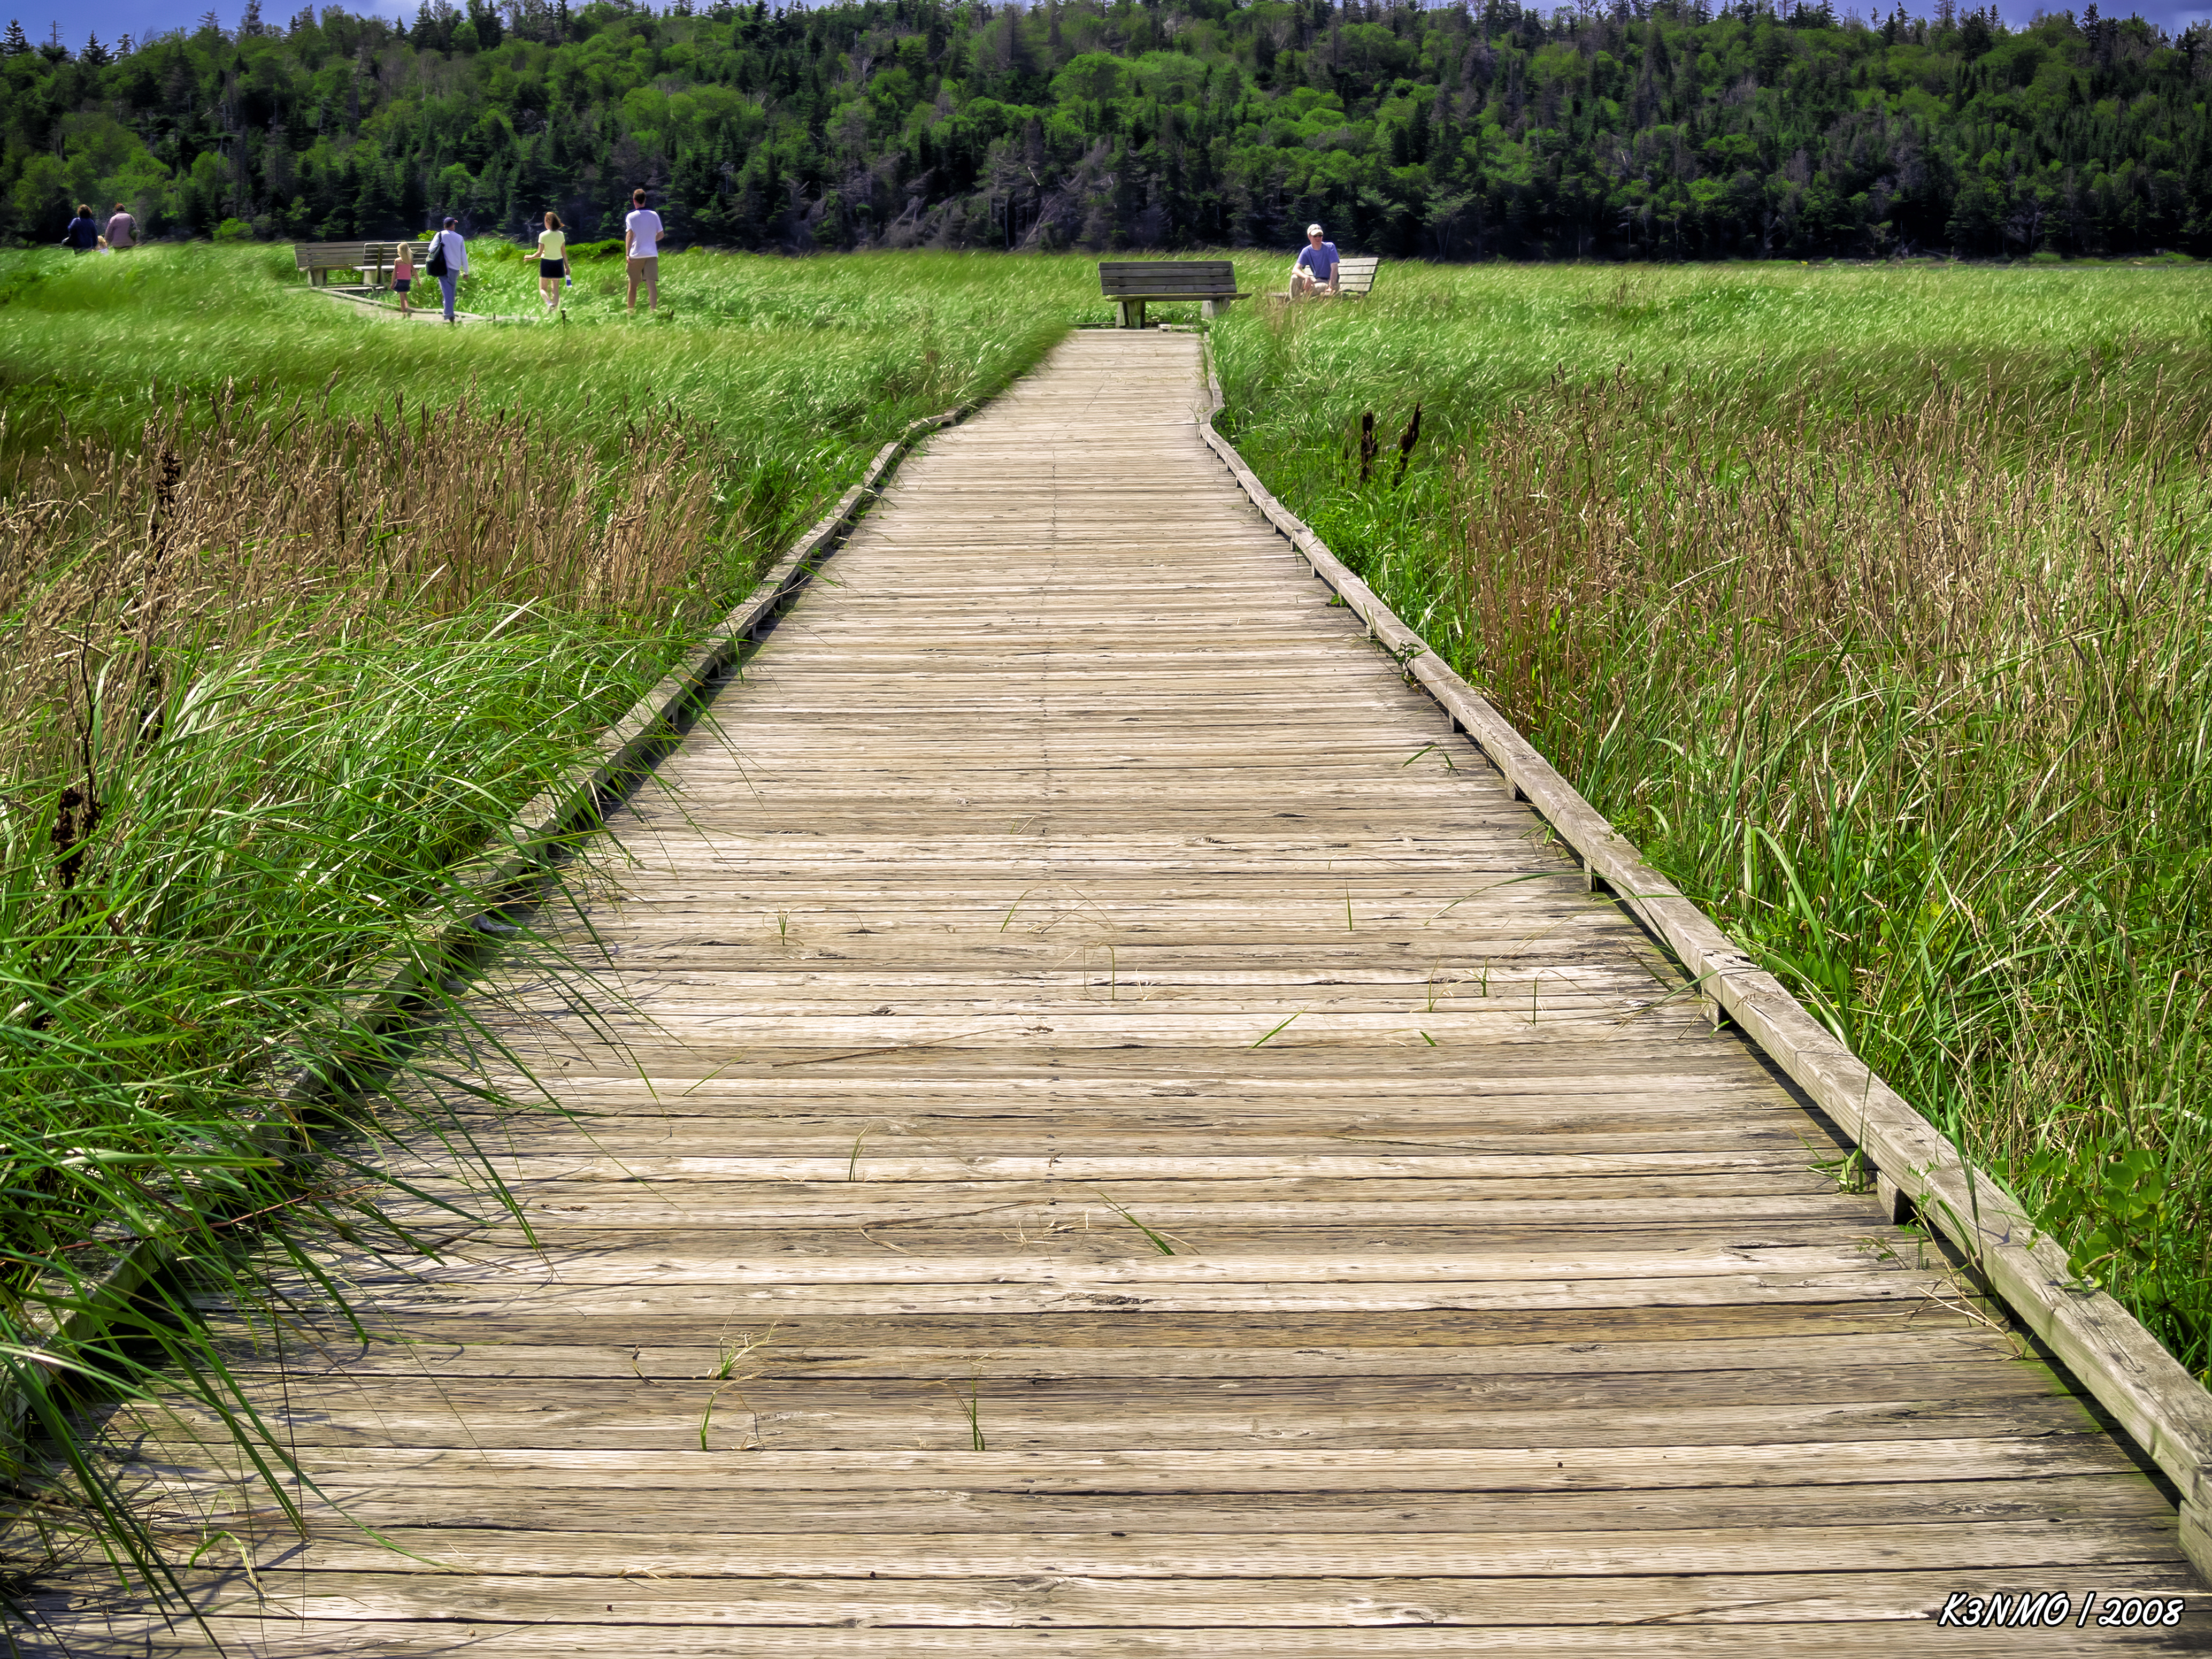 Boardwalk at McCormack's Beach Provincial Park